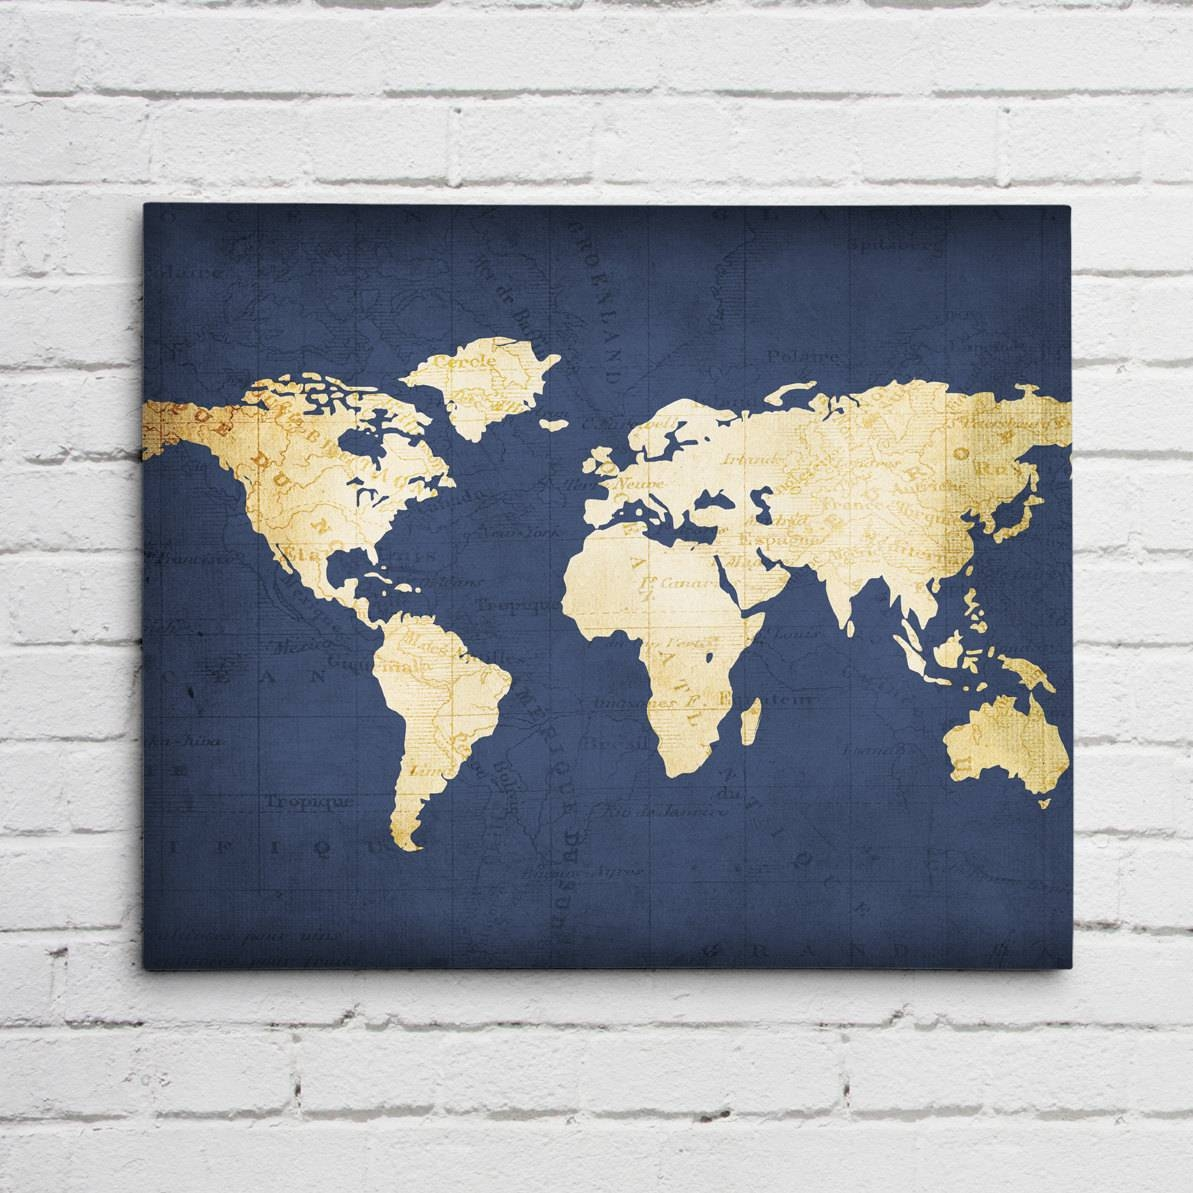 World Map Wall Art Intended For Most Recent Worldmap Wall Art (View 16 of 20)